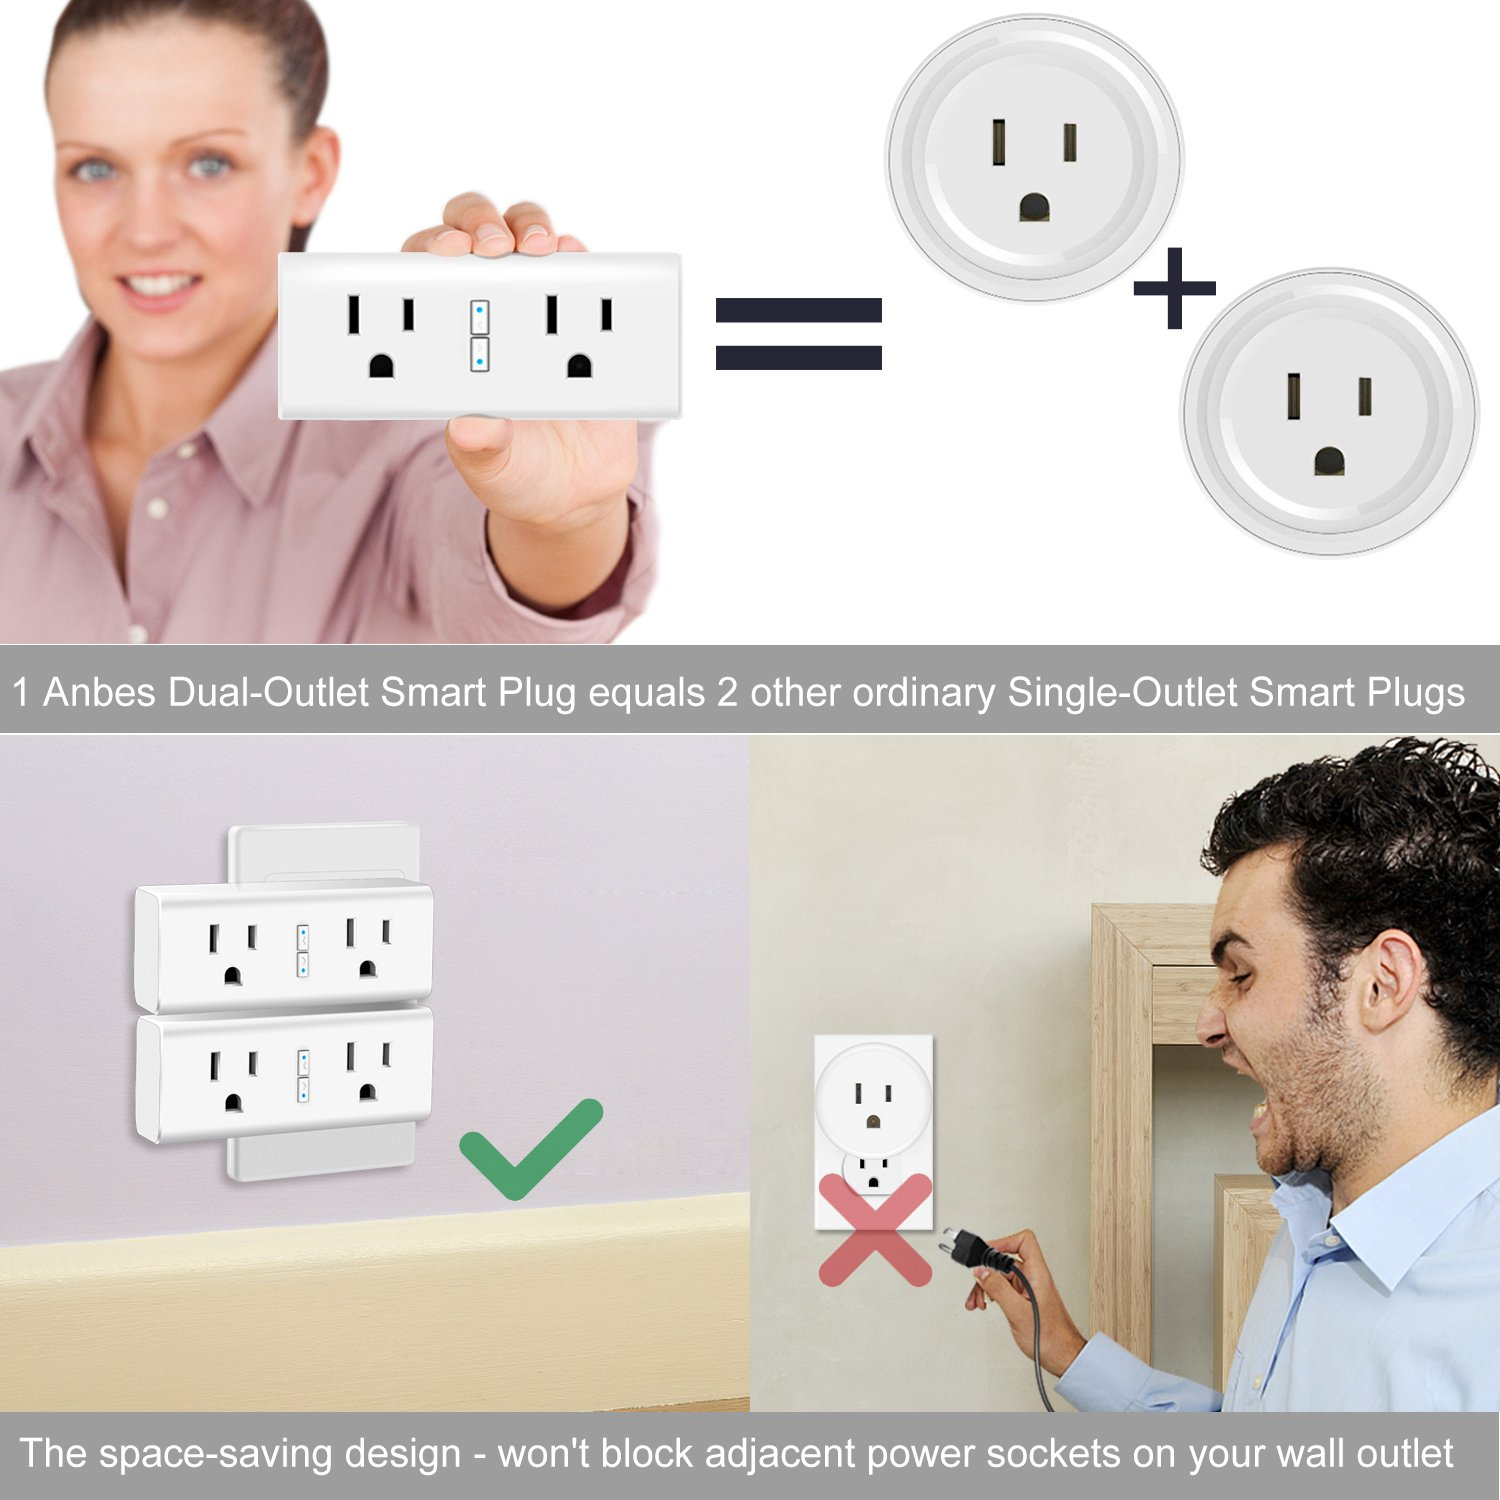 Anbes Wi-Fi Smart Plug Mini Outlet with Energy Monitoring, Alexa Plug Smart Socket Compatible with Alexa and Google Home, Timing Function, Dual Outlets Work Individually or in Groups (2 Pack) by Anbes WP6 (Image #2)